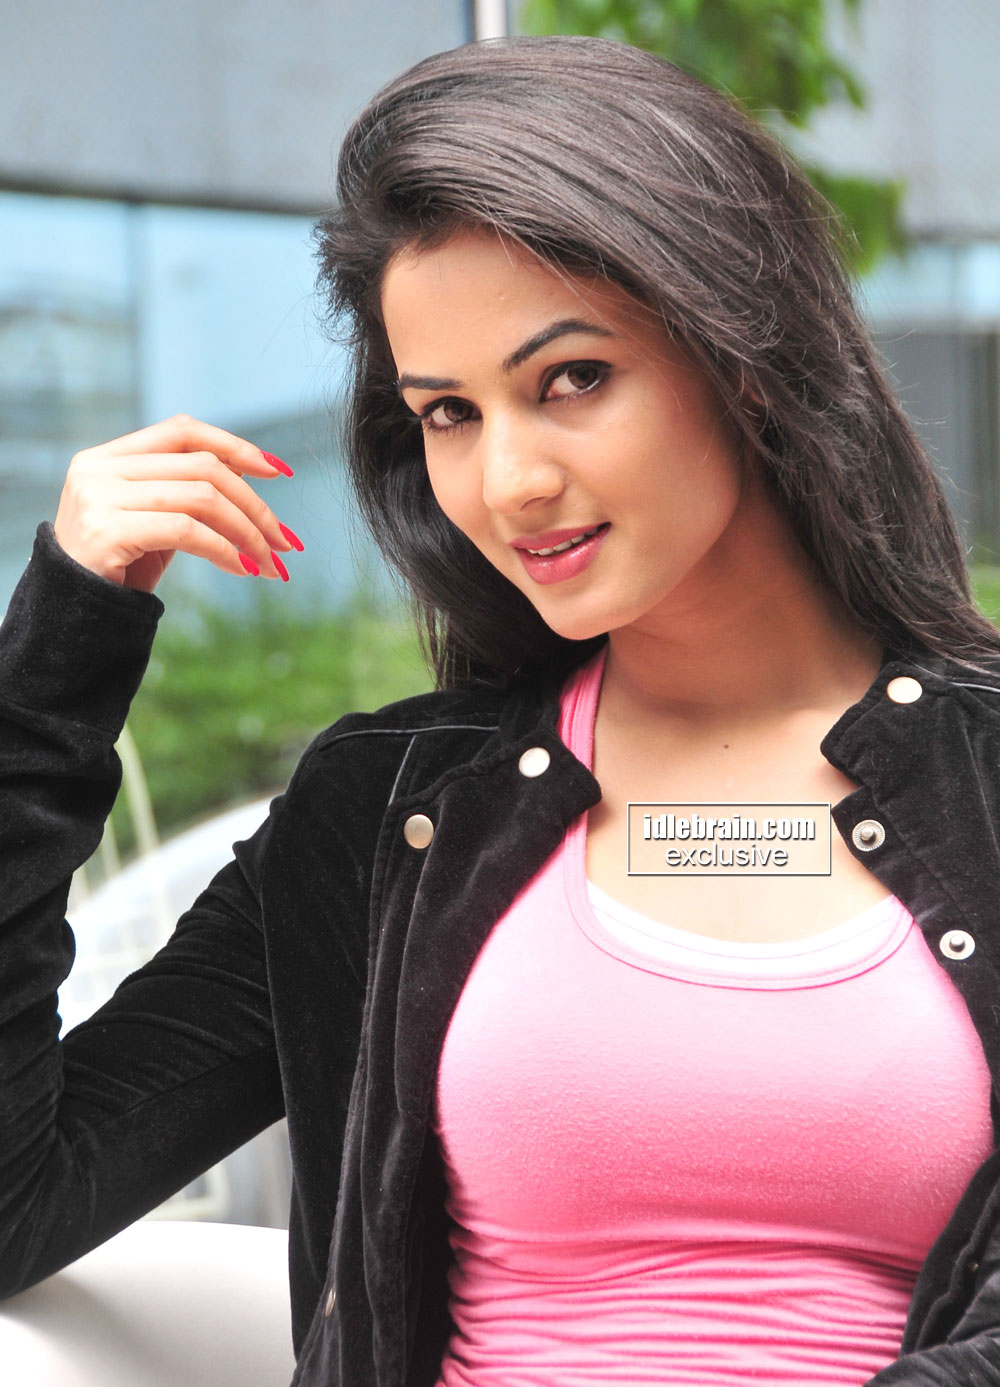 Hottie Sonal Chauhan Showing beautiful in a Tight Pink TopHottie Sonal Chauhan Showing beautiful in a Tight Pink Top